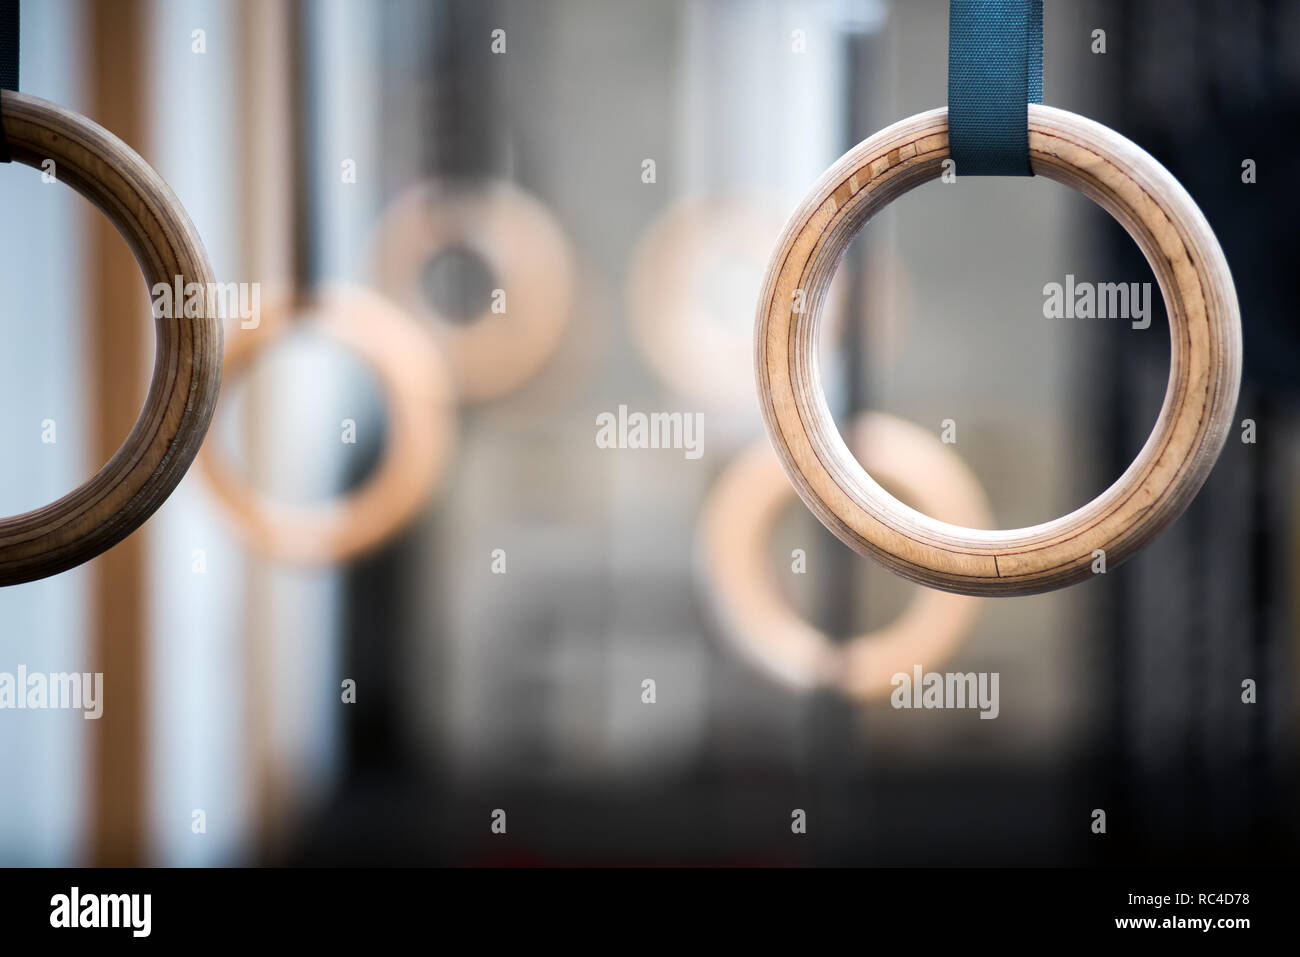 Wooden sport rings in gym, viewed in close-up with selective focus. Pair of rings is blurred in background. Gymnastics equipment concept - Stock Image